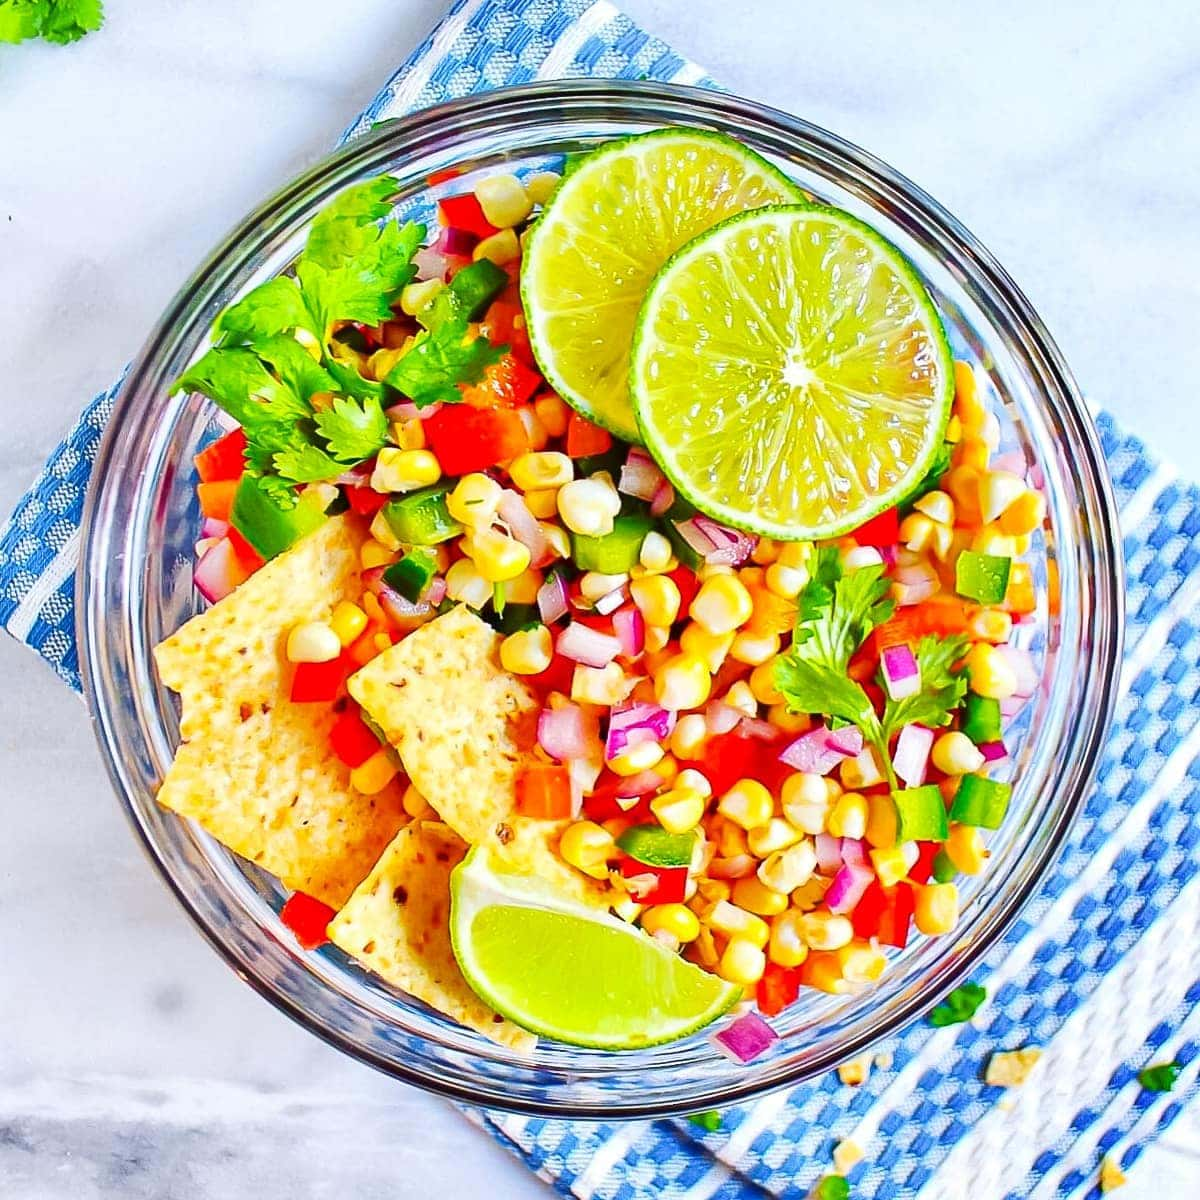 Picture of corn salsa in a round, glass bowl, garnished with sliced limes, cilantro, and tortilla chips.